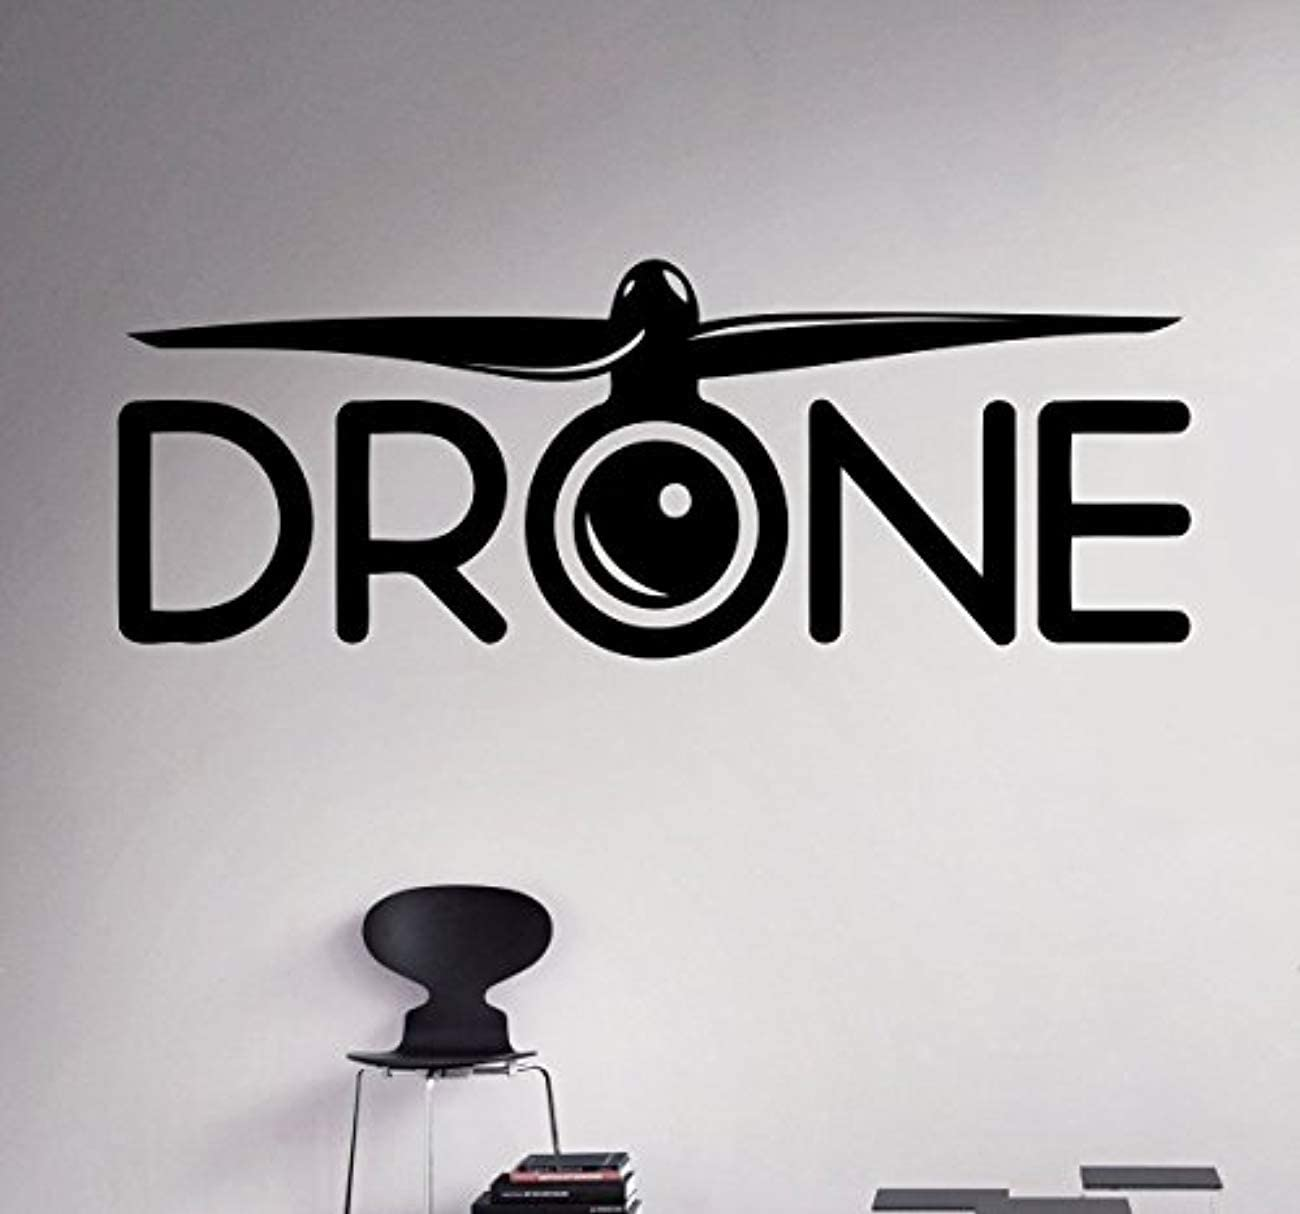 amazon com wall vinyl decal air spy drone quadcopter logo aircraft home ideas kids room vinyl decor sticker home art print wd5496 home kitchen wall vinyl decal air spy drone quadcopter logo aircraft home ideas kids room vinyl decor sticker home art print wd5496